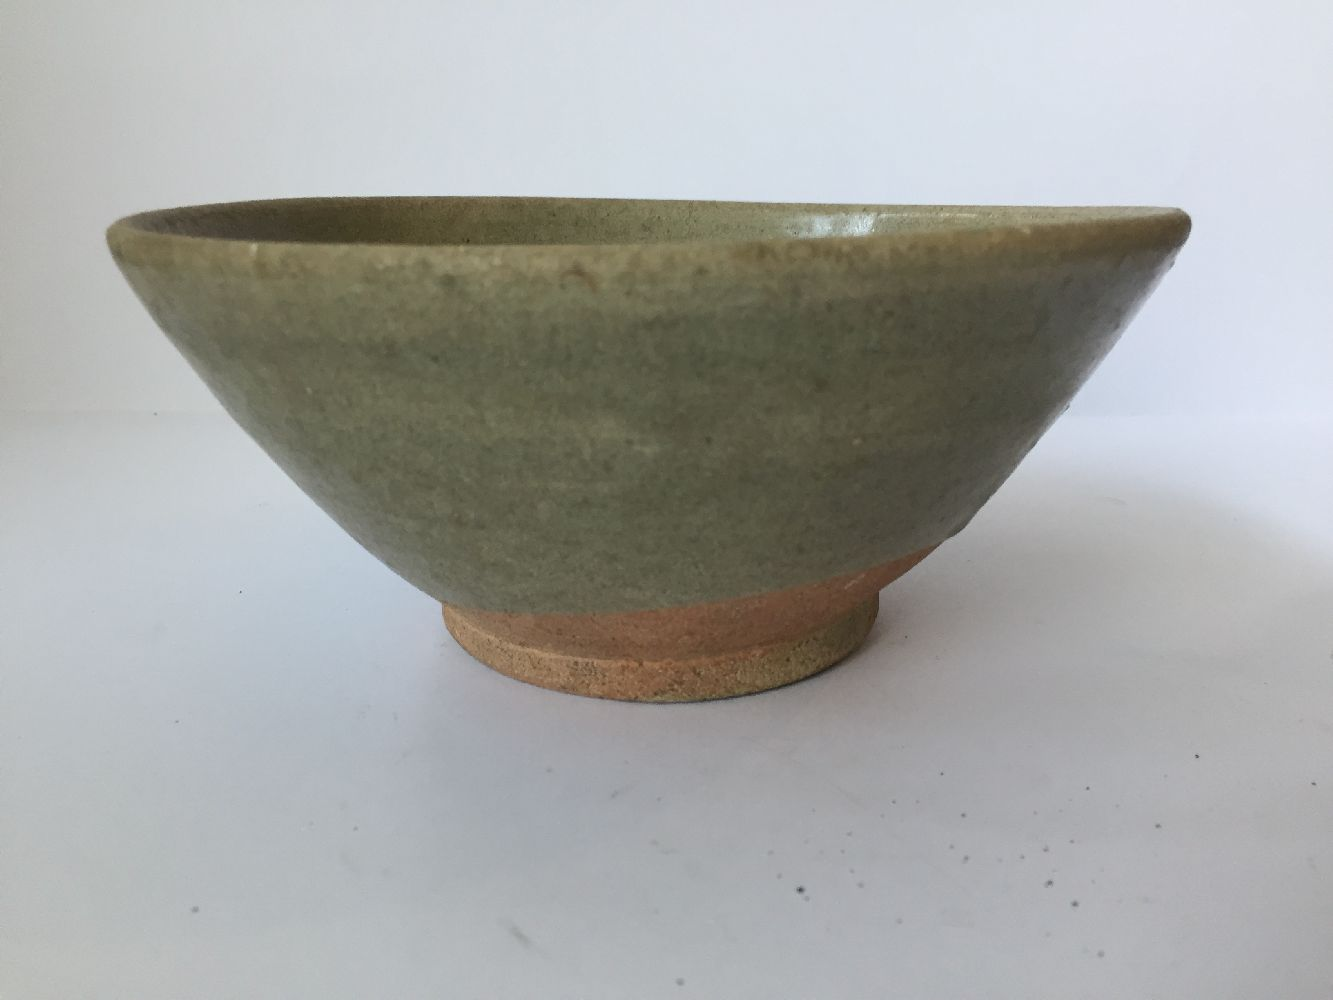 Three Thai Sawankhalok bowls, 15th-16th century, each covered in a celadon glaze, two with fluted - Image 5 of 27